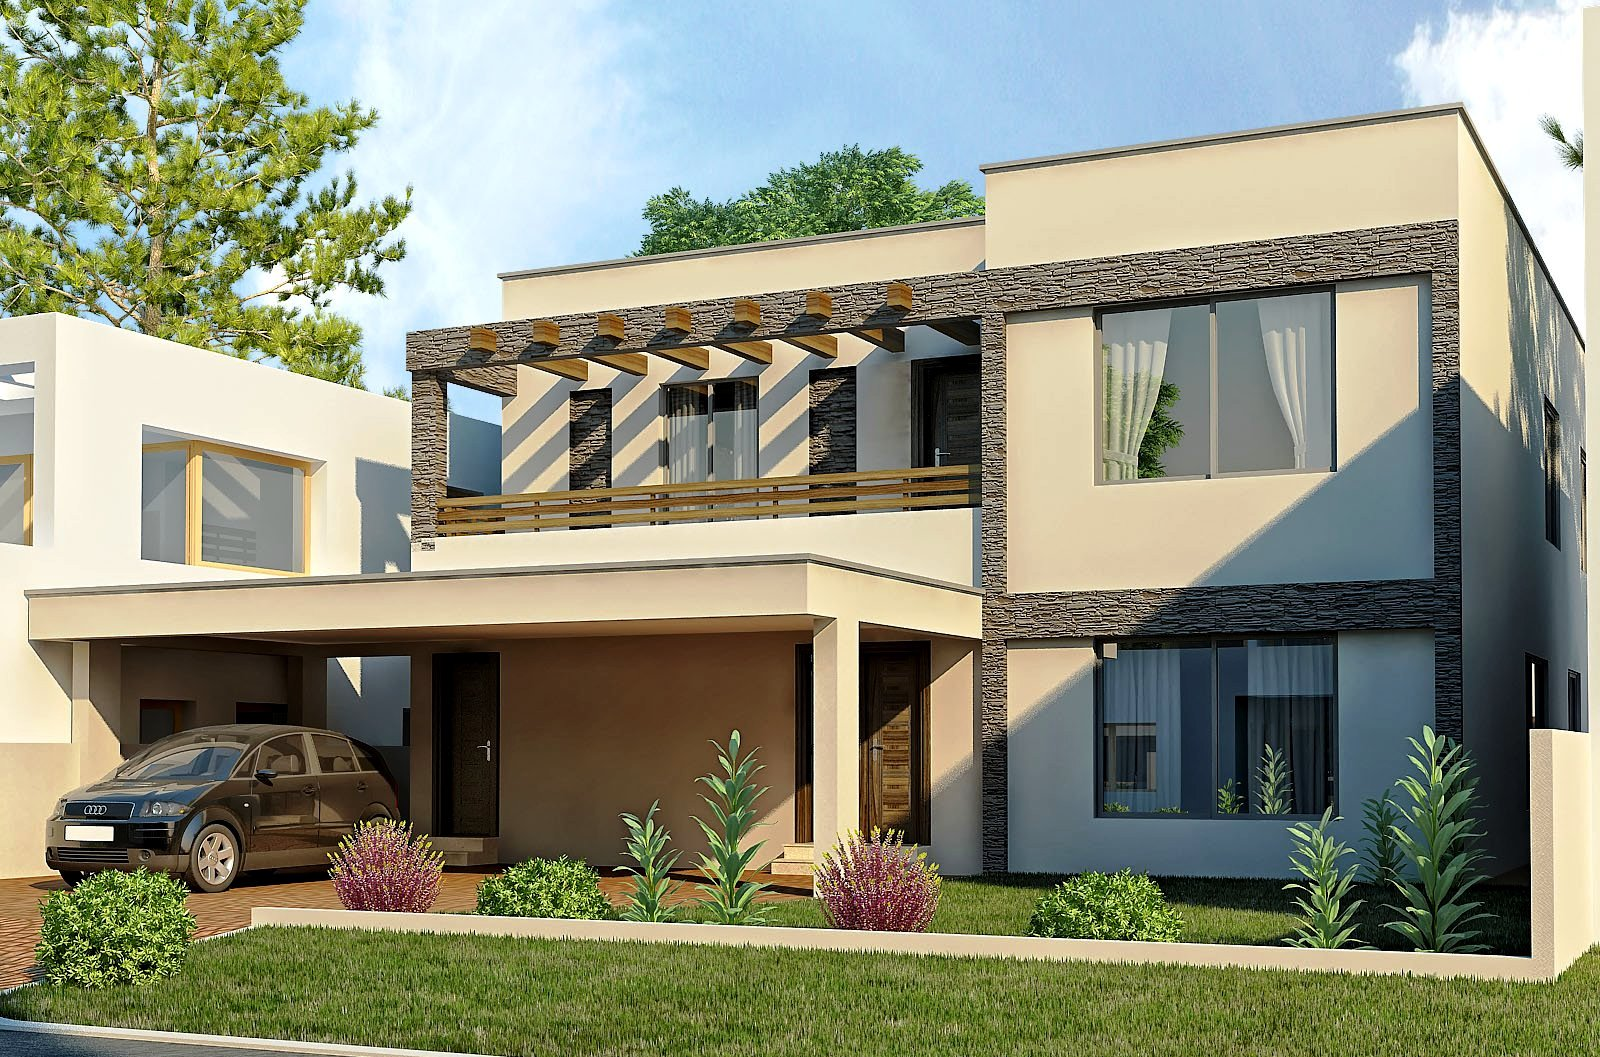 New home designs latest modern homes exterior designs views for Exterior remodeling ideas